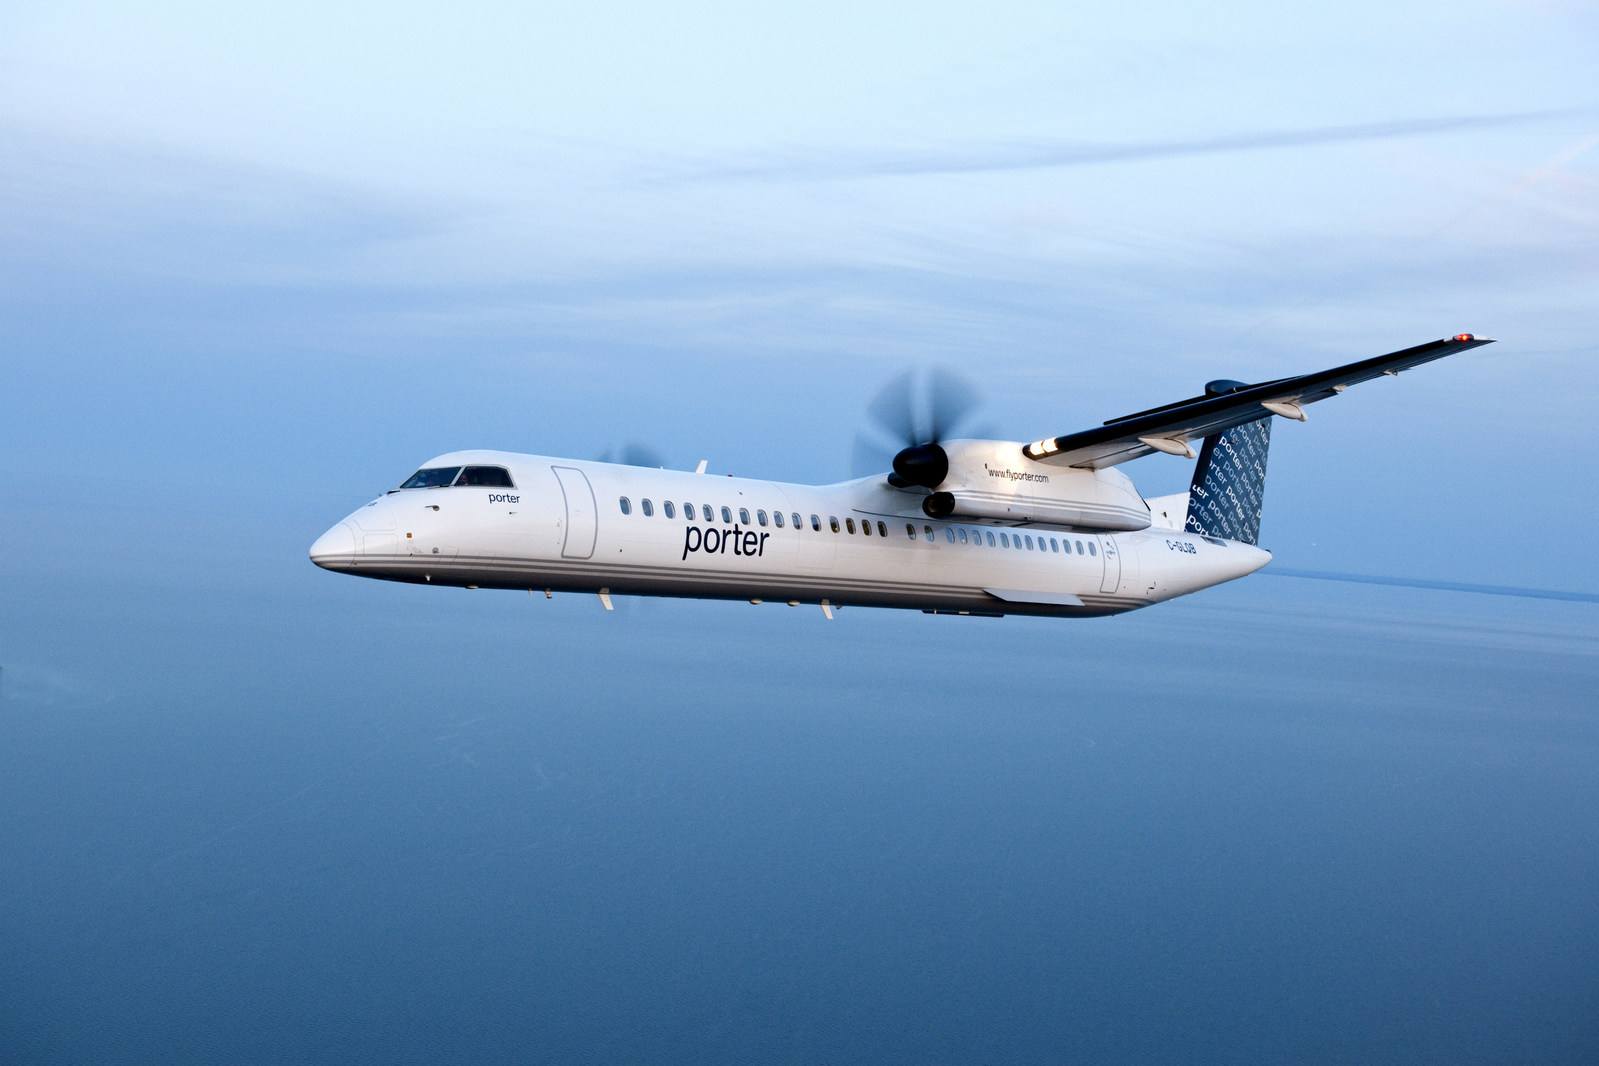 Porter Bombardier Q400 in flight